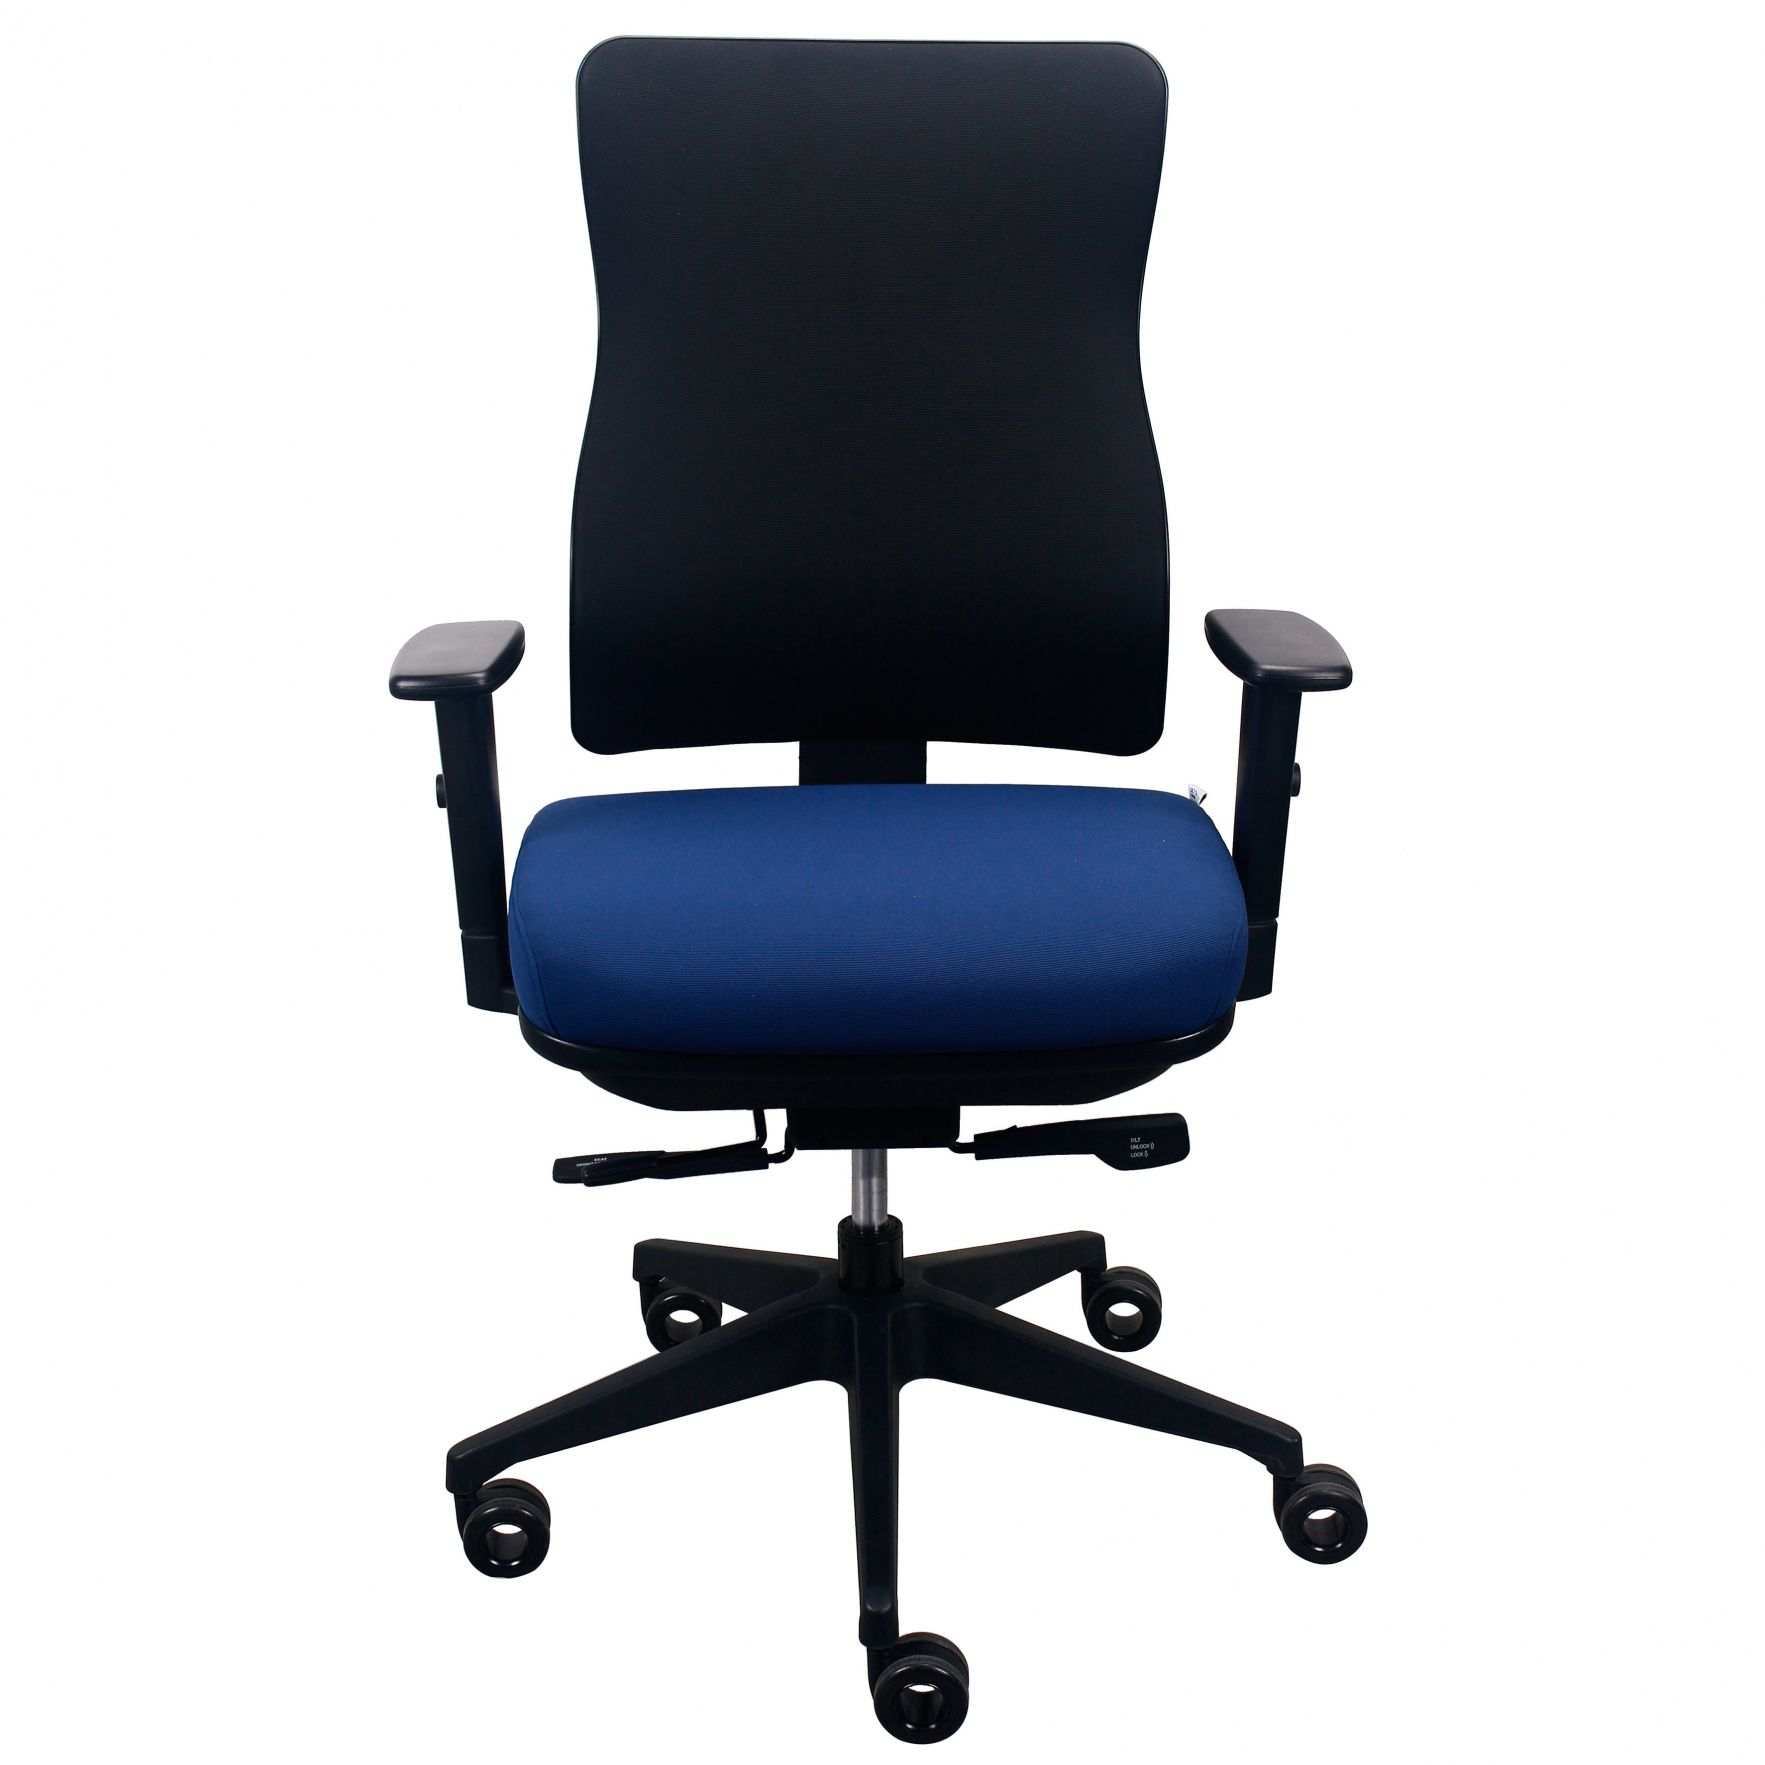 2019 Tempur Pedic Office Chair Cushion Best Paint For Wood Furniture Check More At Http